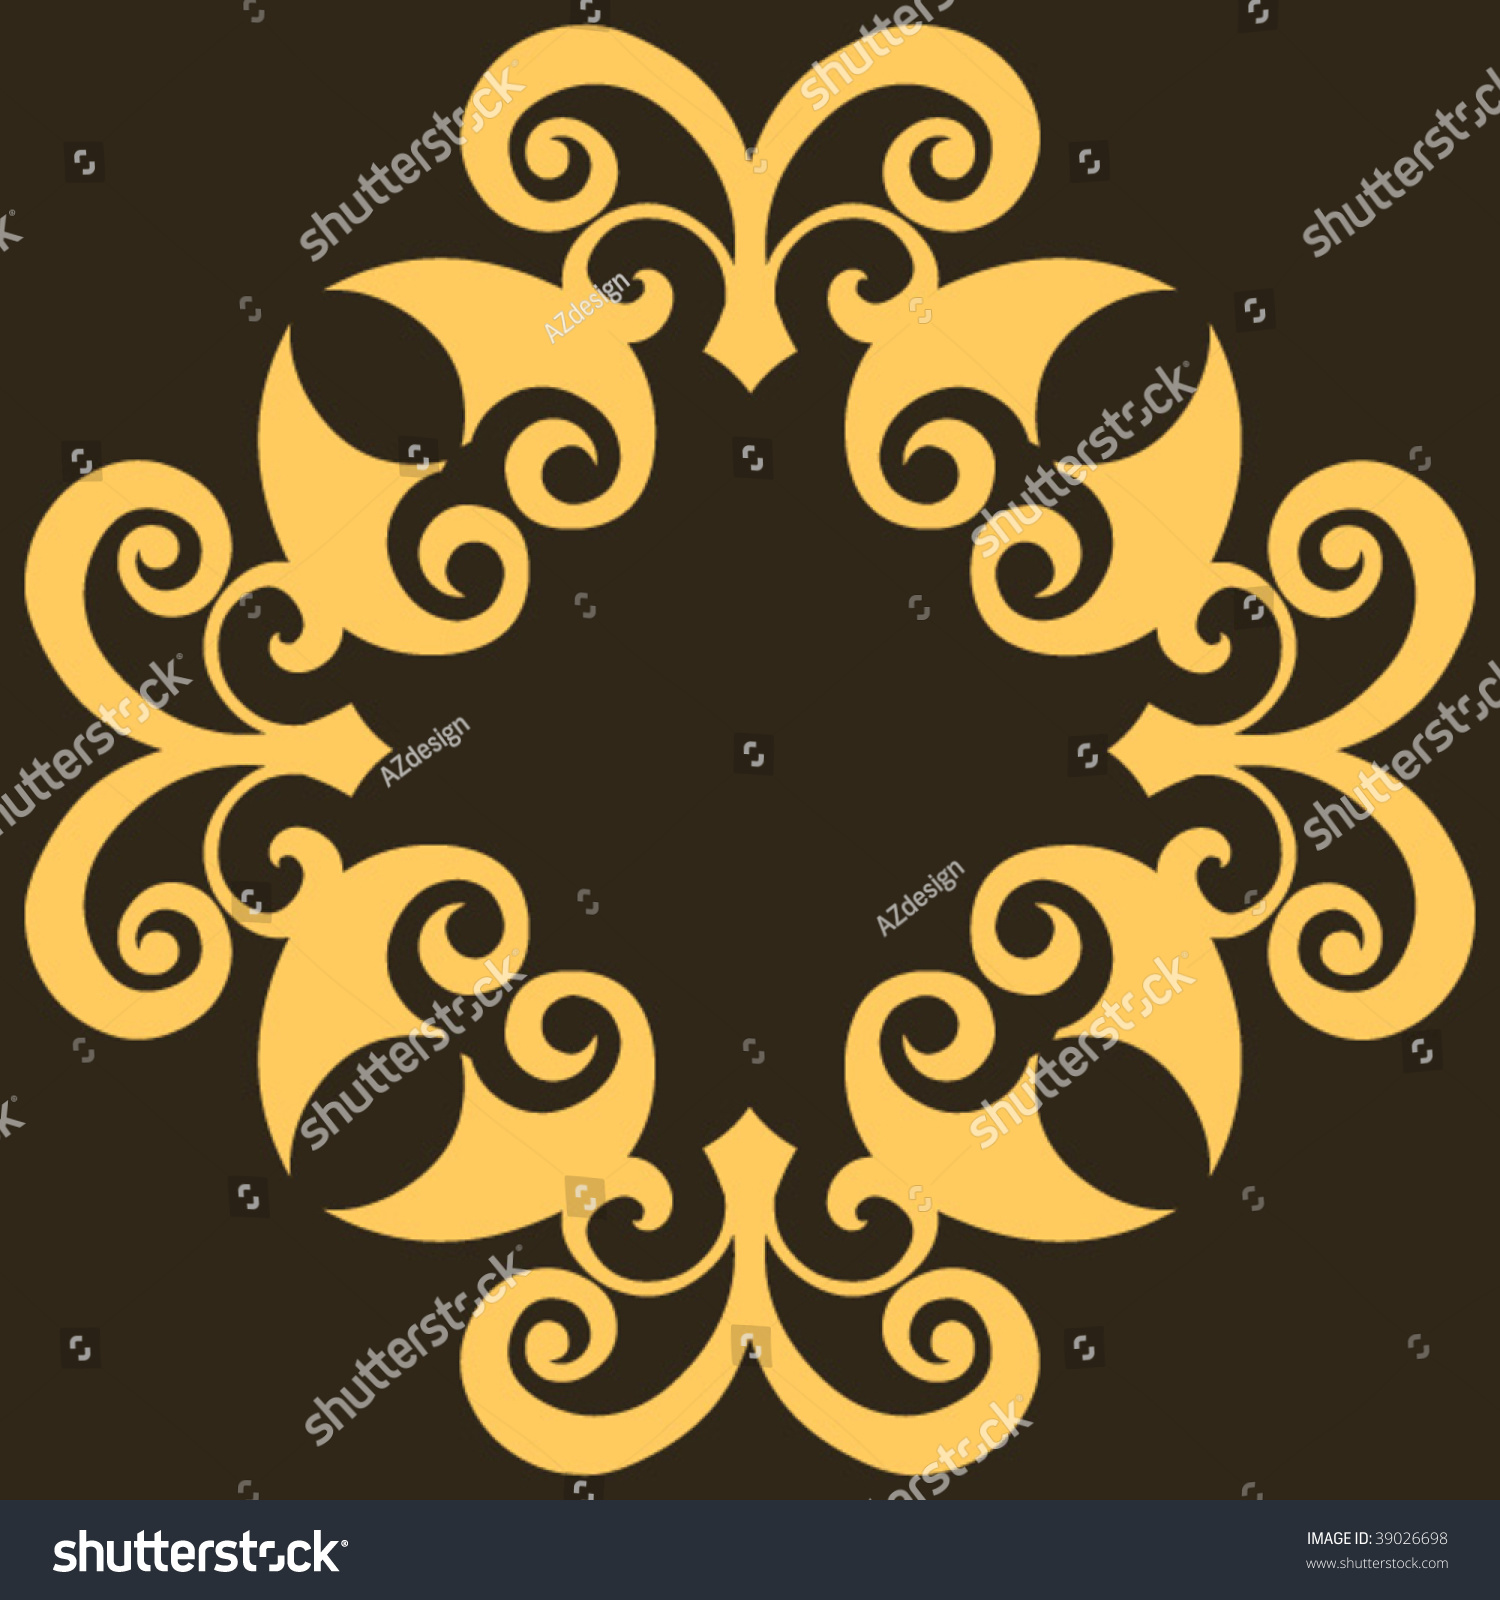 Baroque design element vector decoration 39026698 for Baroque design elements